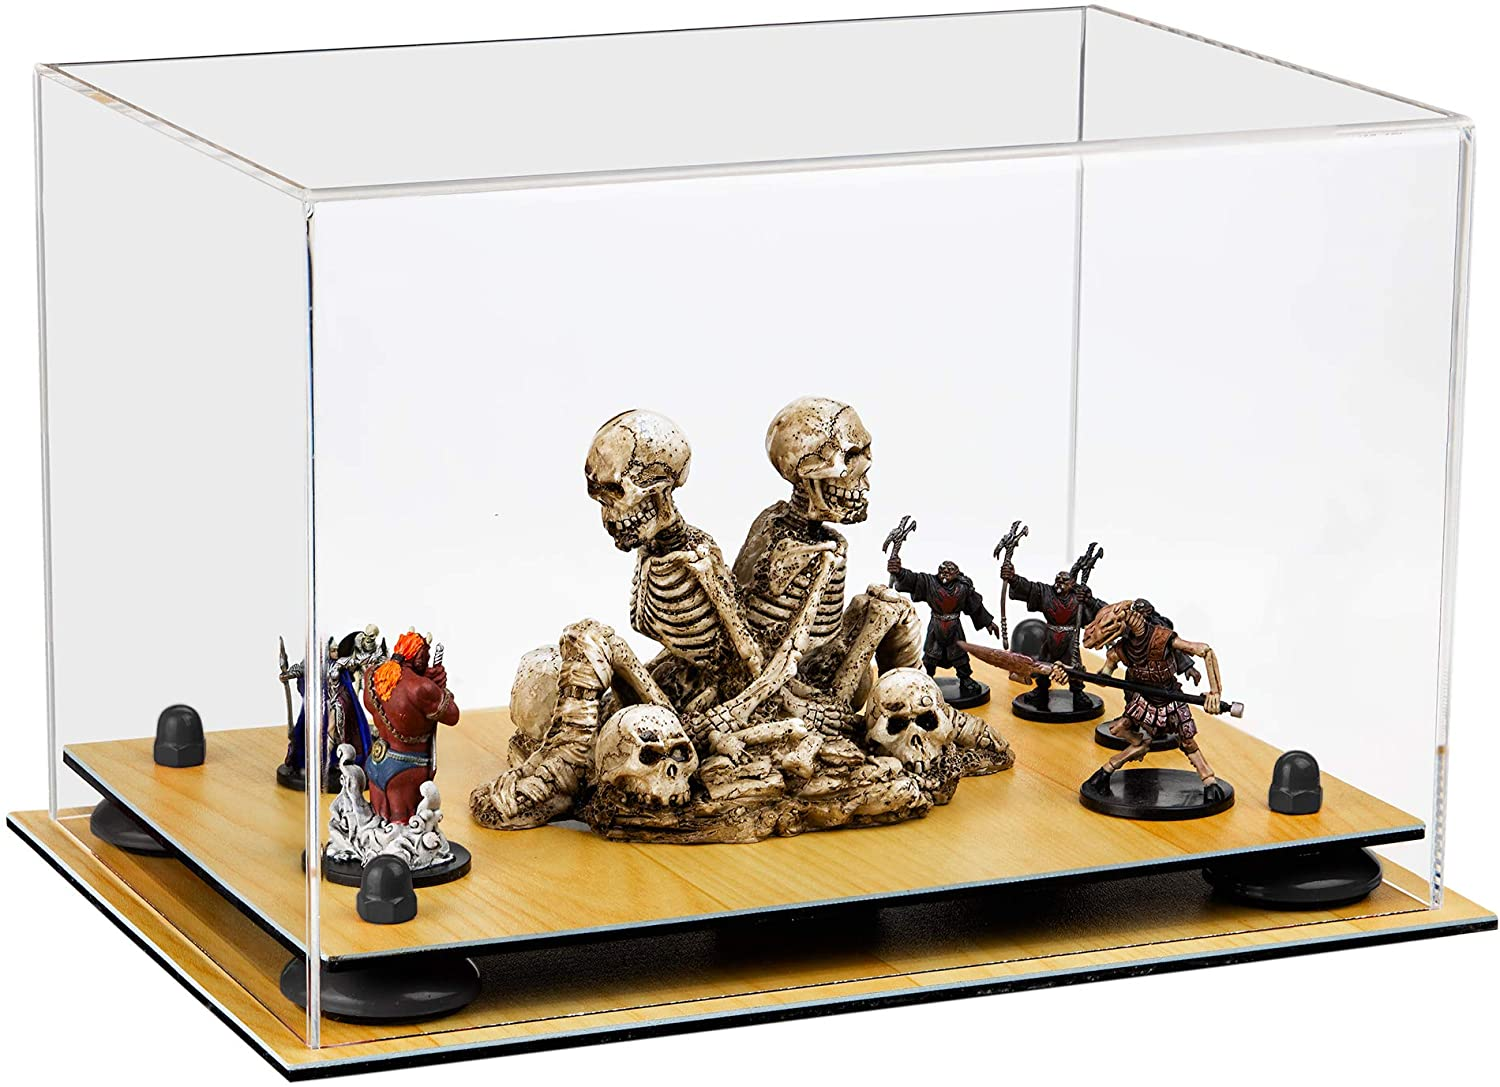 Better Display Cases Versatile Clear Acrylic Display Case - Medium Rectangle Box with Black Risers and Wood Base 12 x 8.25 x 8 (A004-BR)